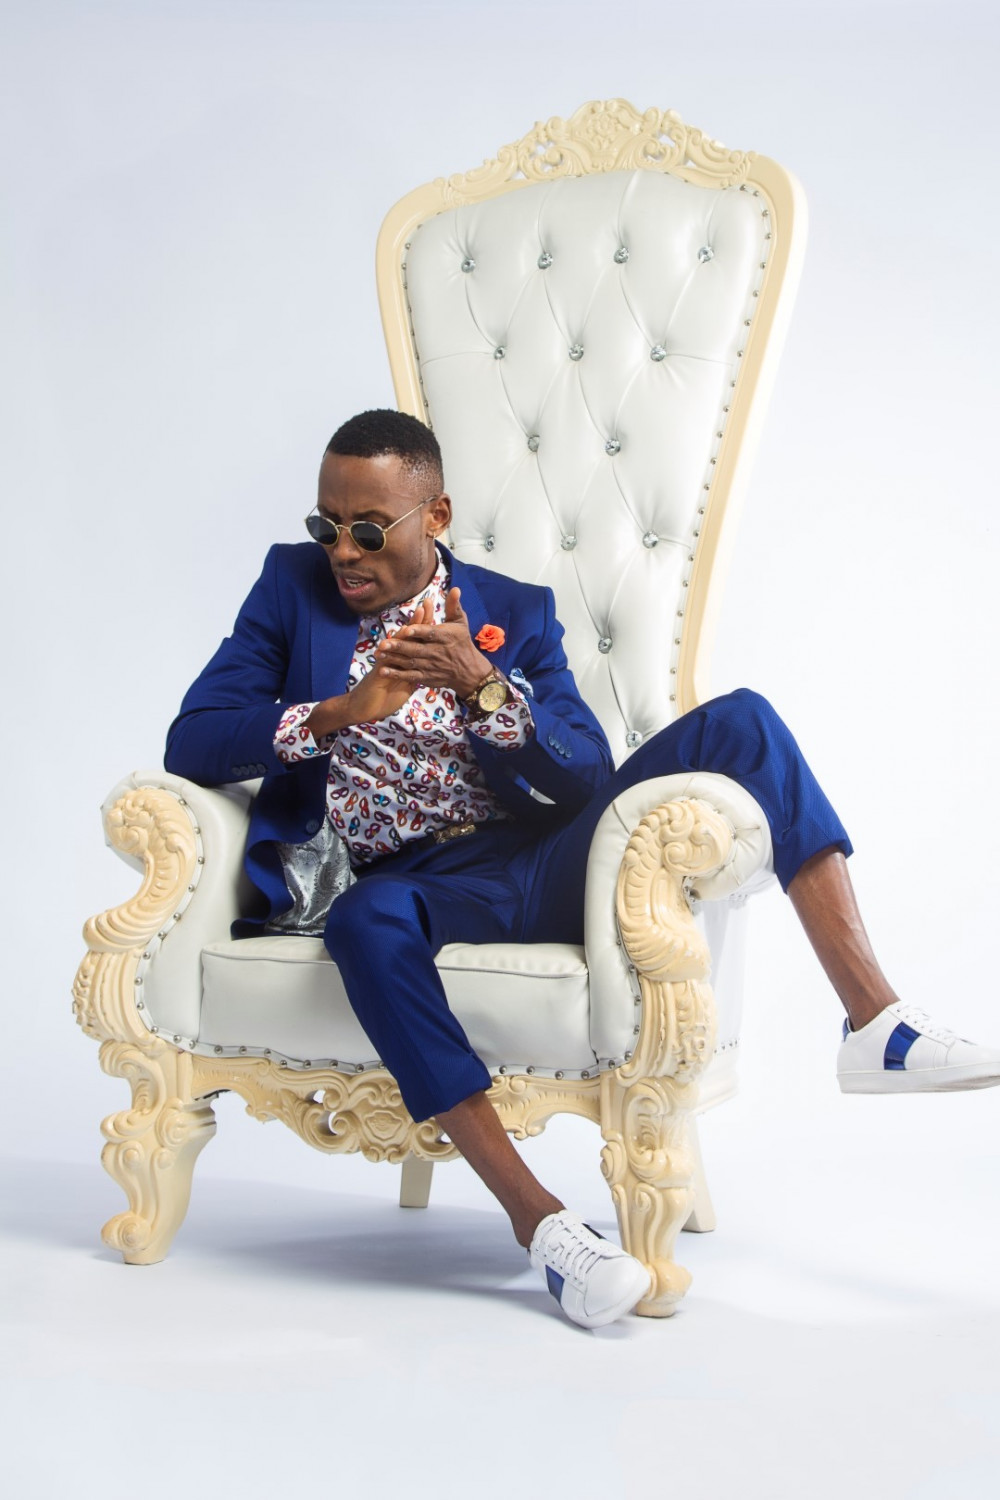 Mr. 2Kay is ready to release New Album